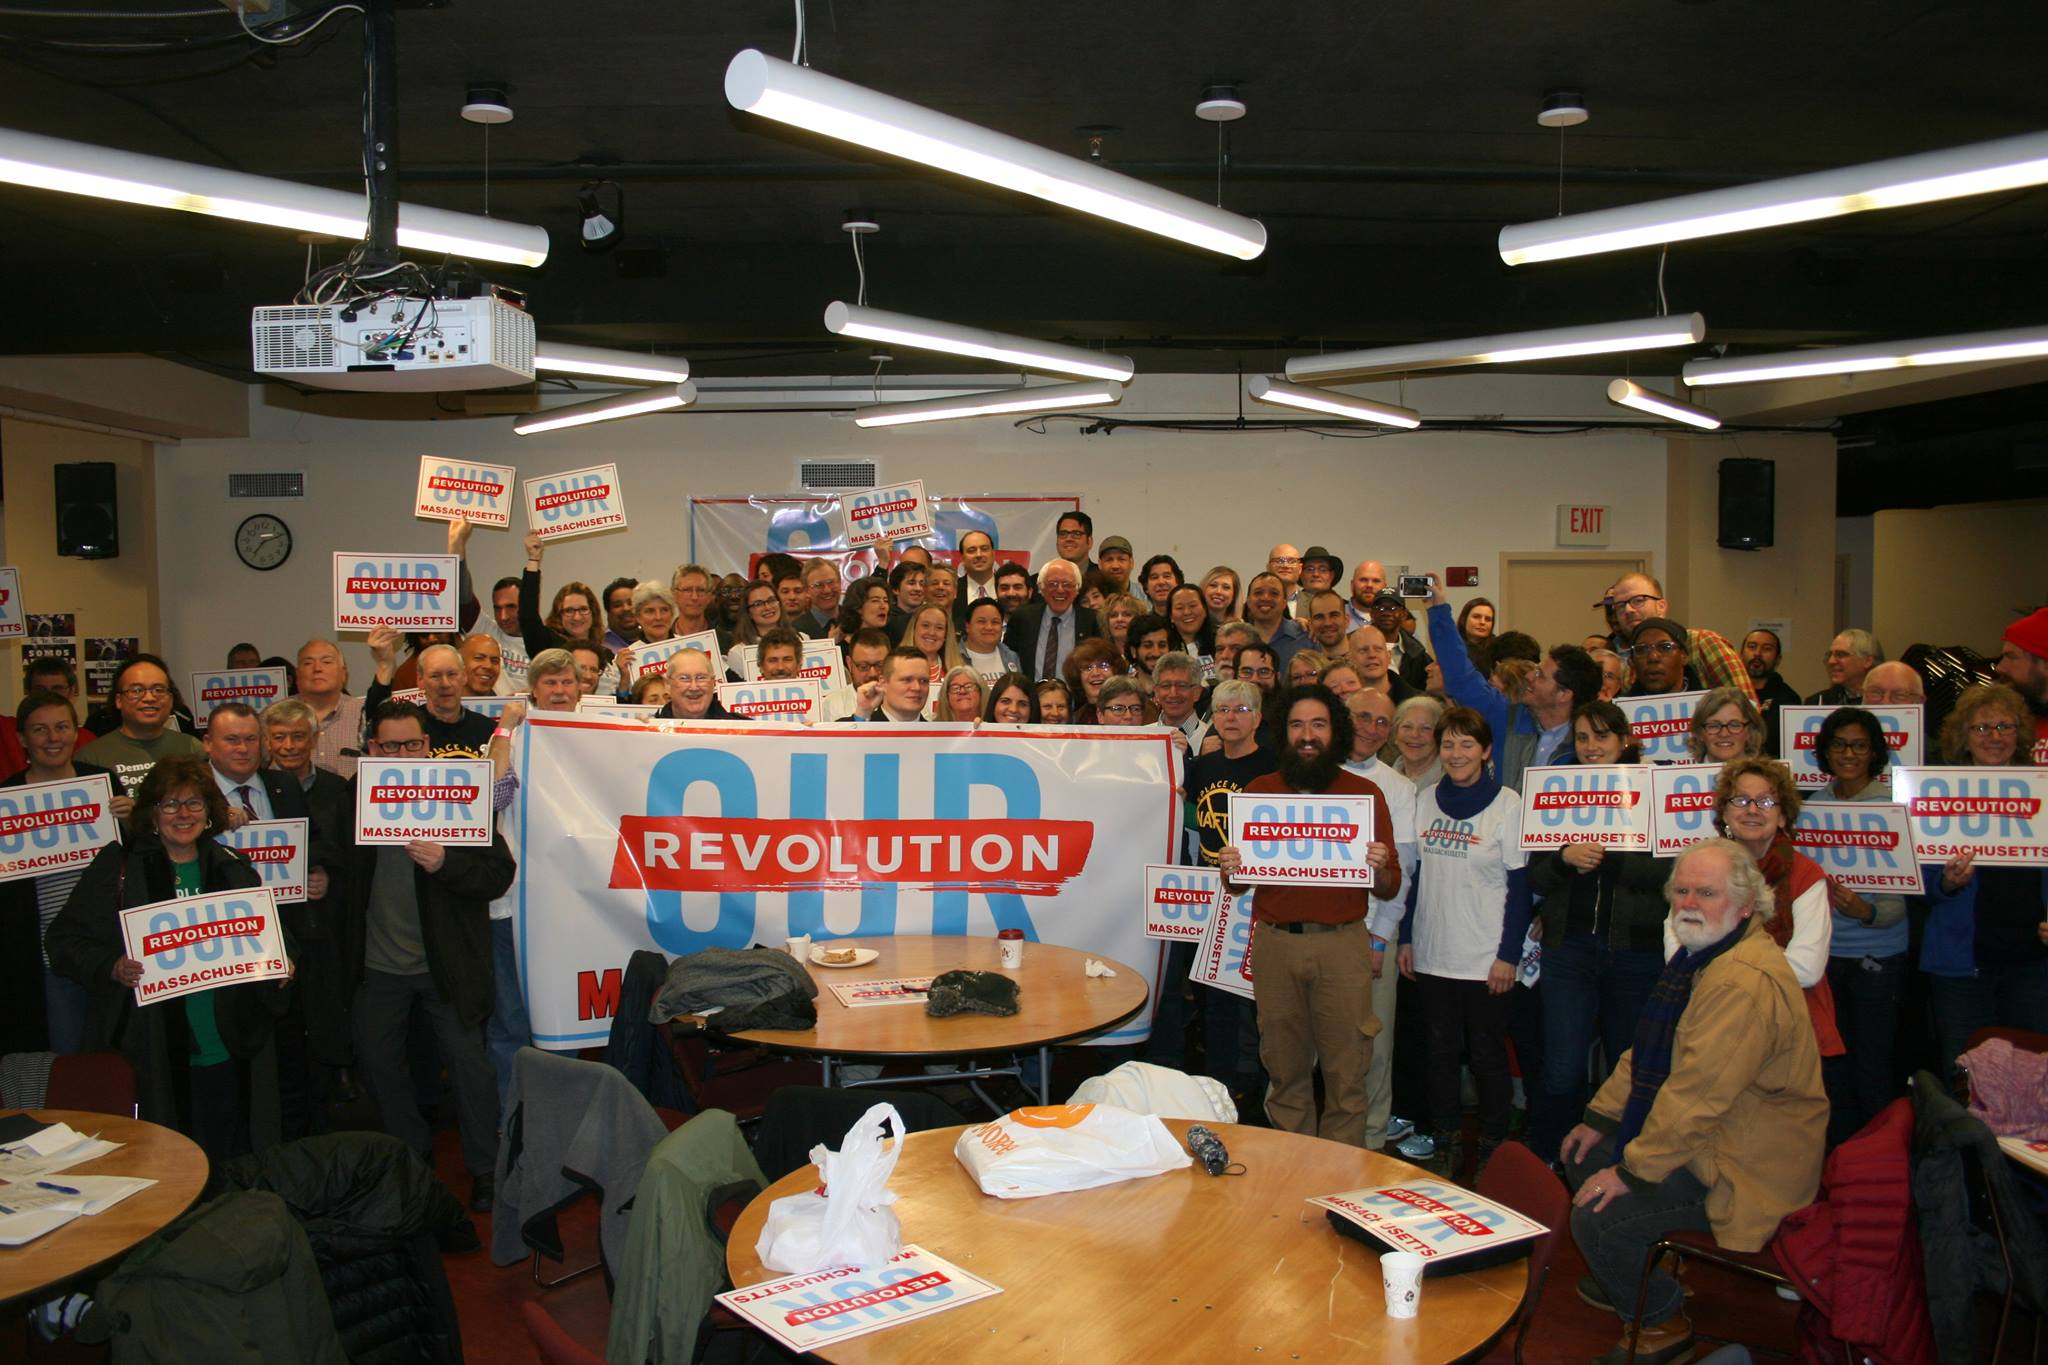 Our Revolution launch on March 31st, 2017 launch in Boston